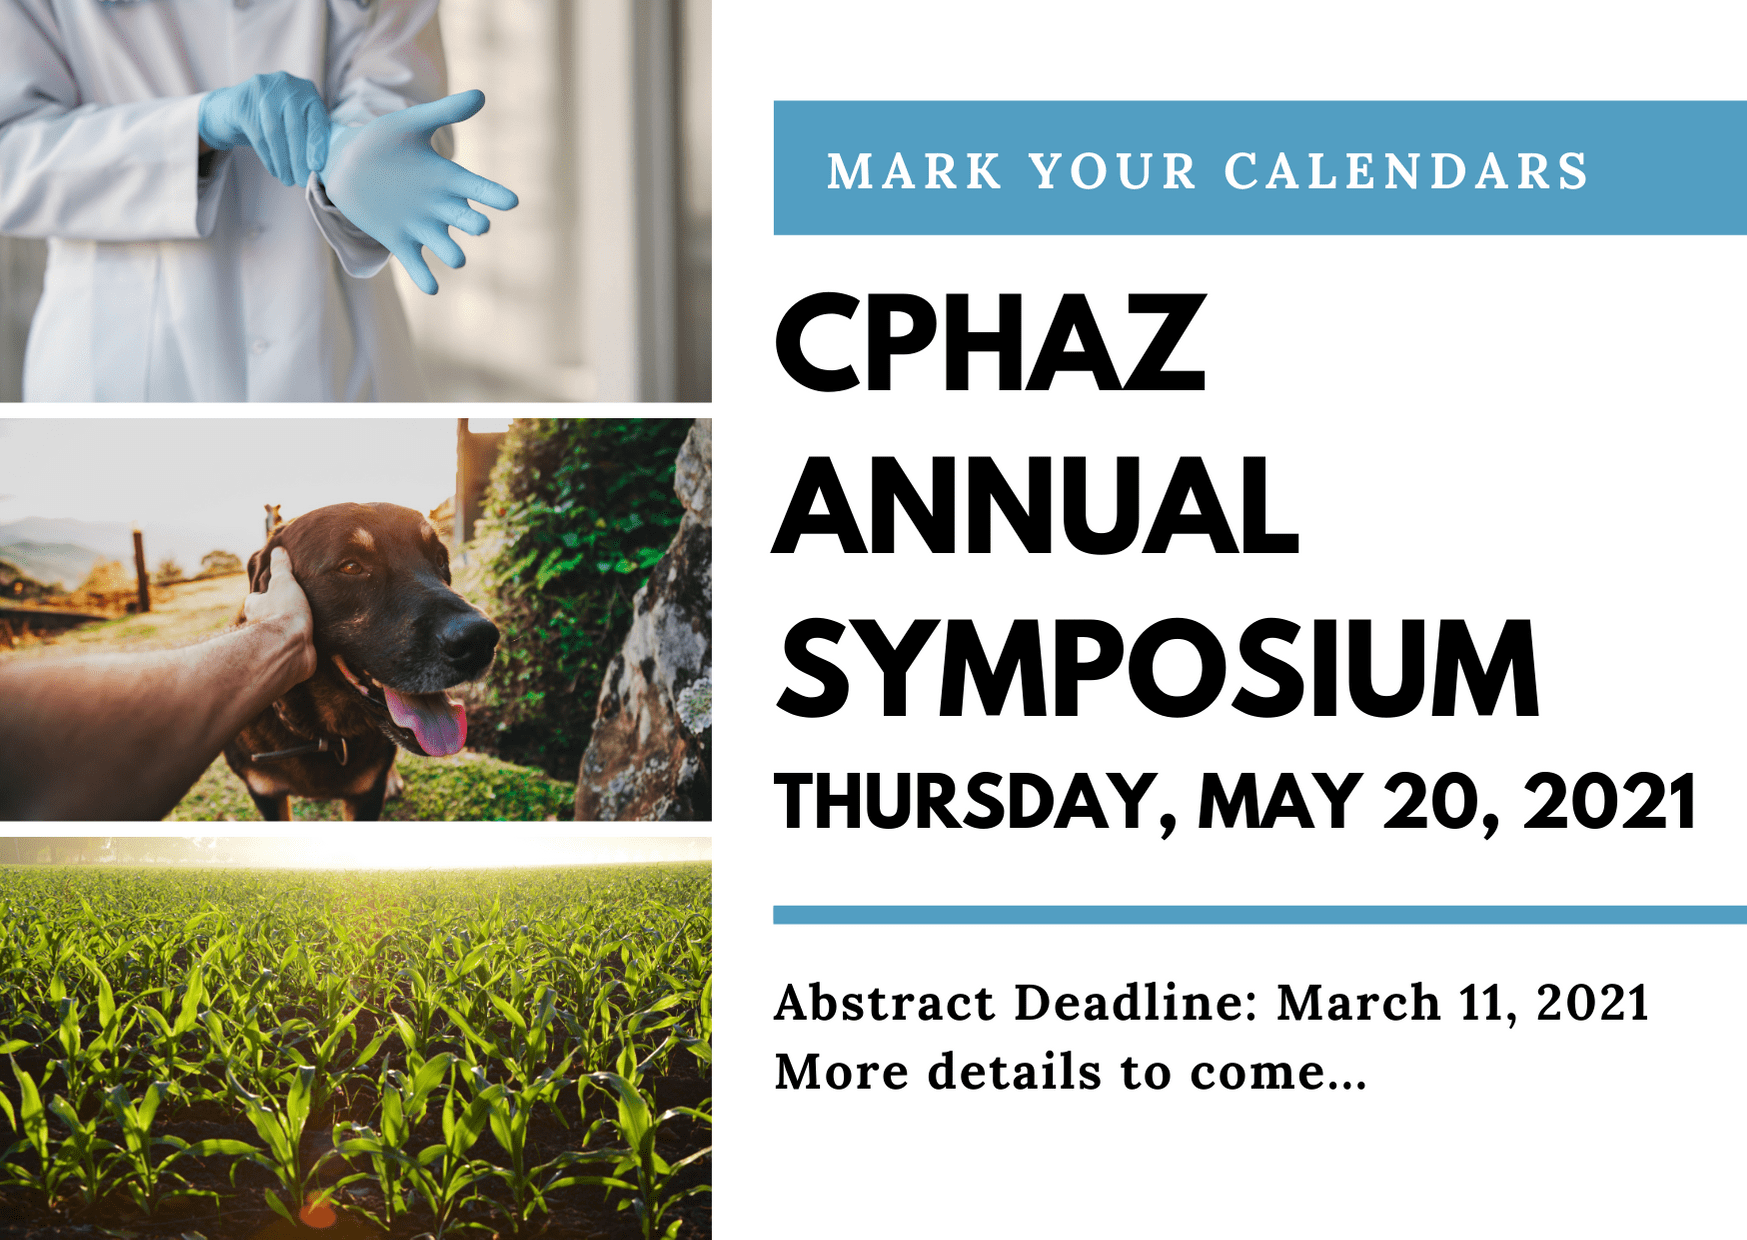 """Poster with text: """"Mark Your Calendars CPHAZ ANNUAL SYMPOSIUM THURSDAY, MAY 20, 2021 Abstract Deadline: March 11, 2021 More details to come..."""" with images of a person putting on medical gloves, a person petting a dog, and crops."""